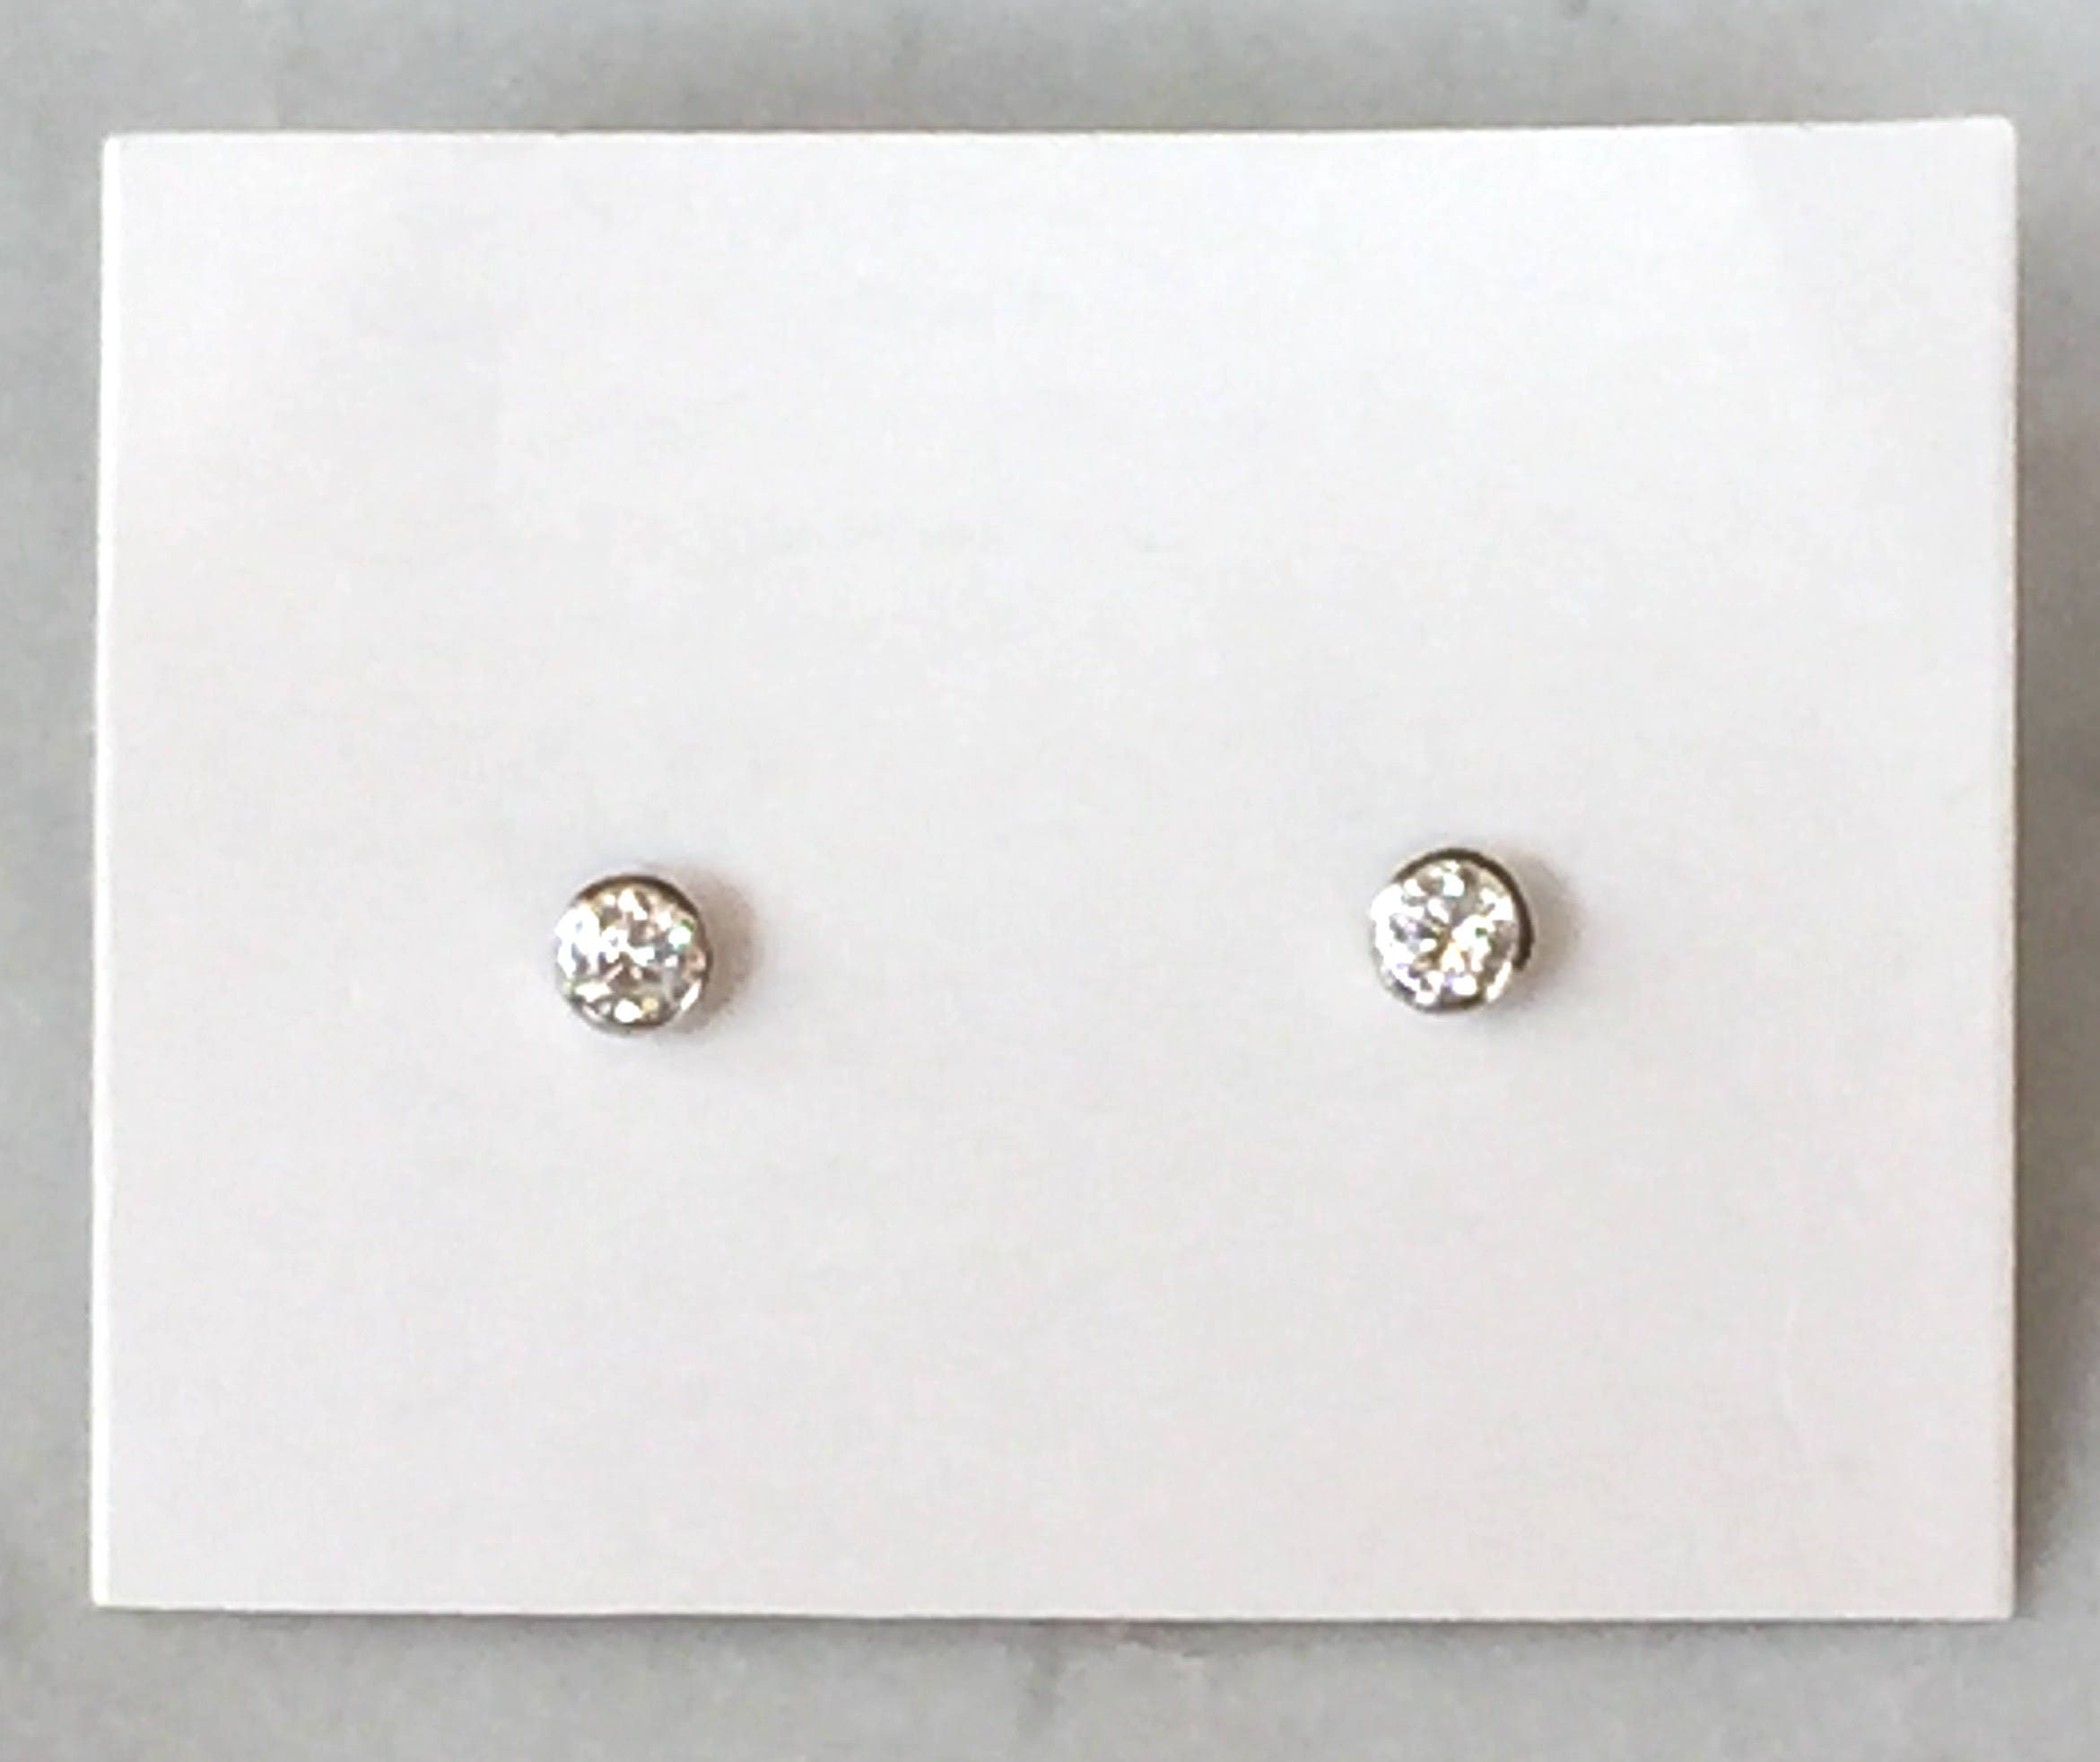 Diamond Stud Earrings Round Solitaire Earrings Bezel Set